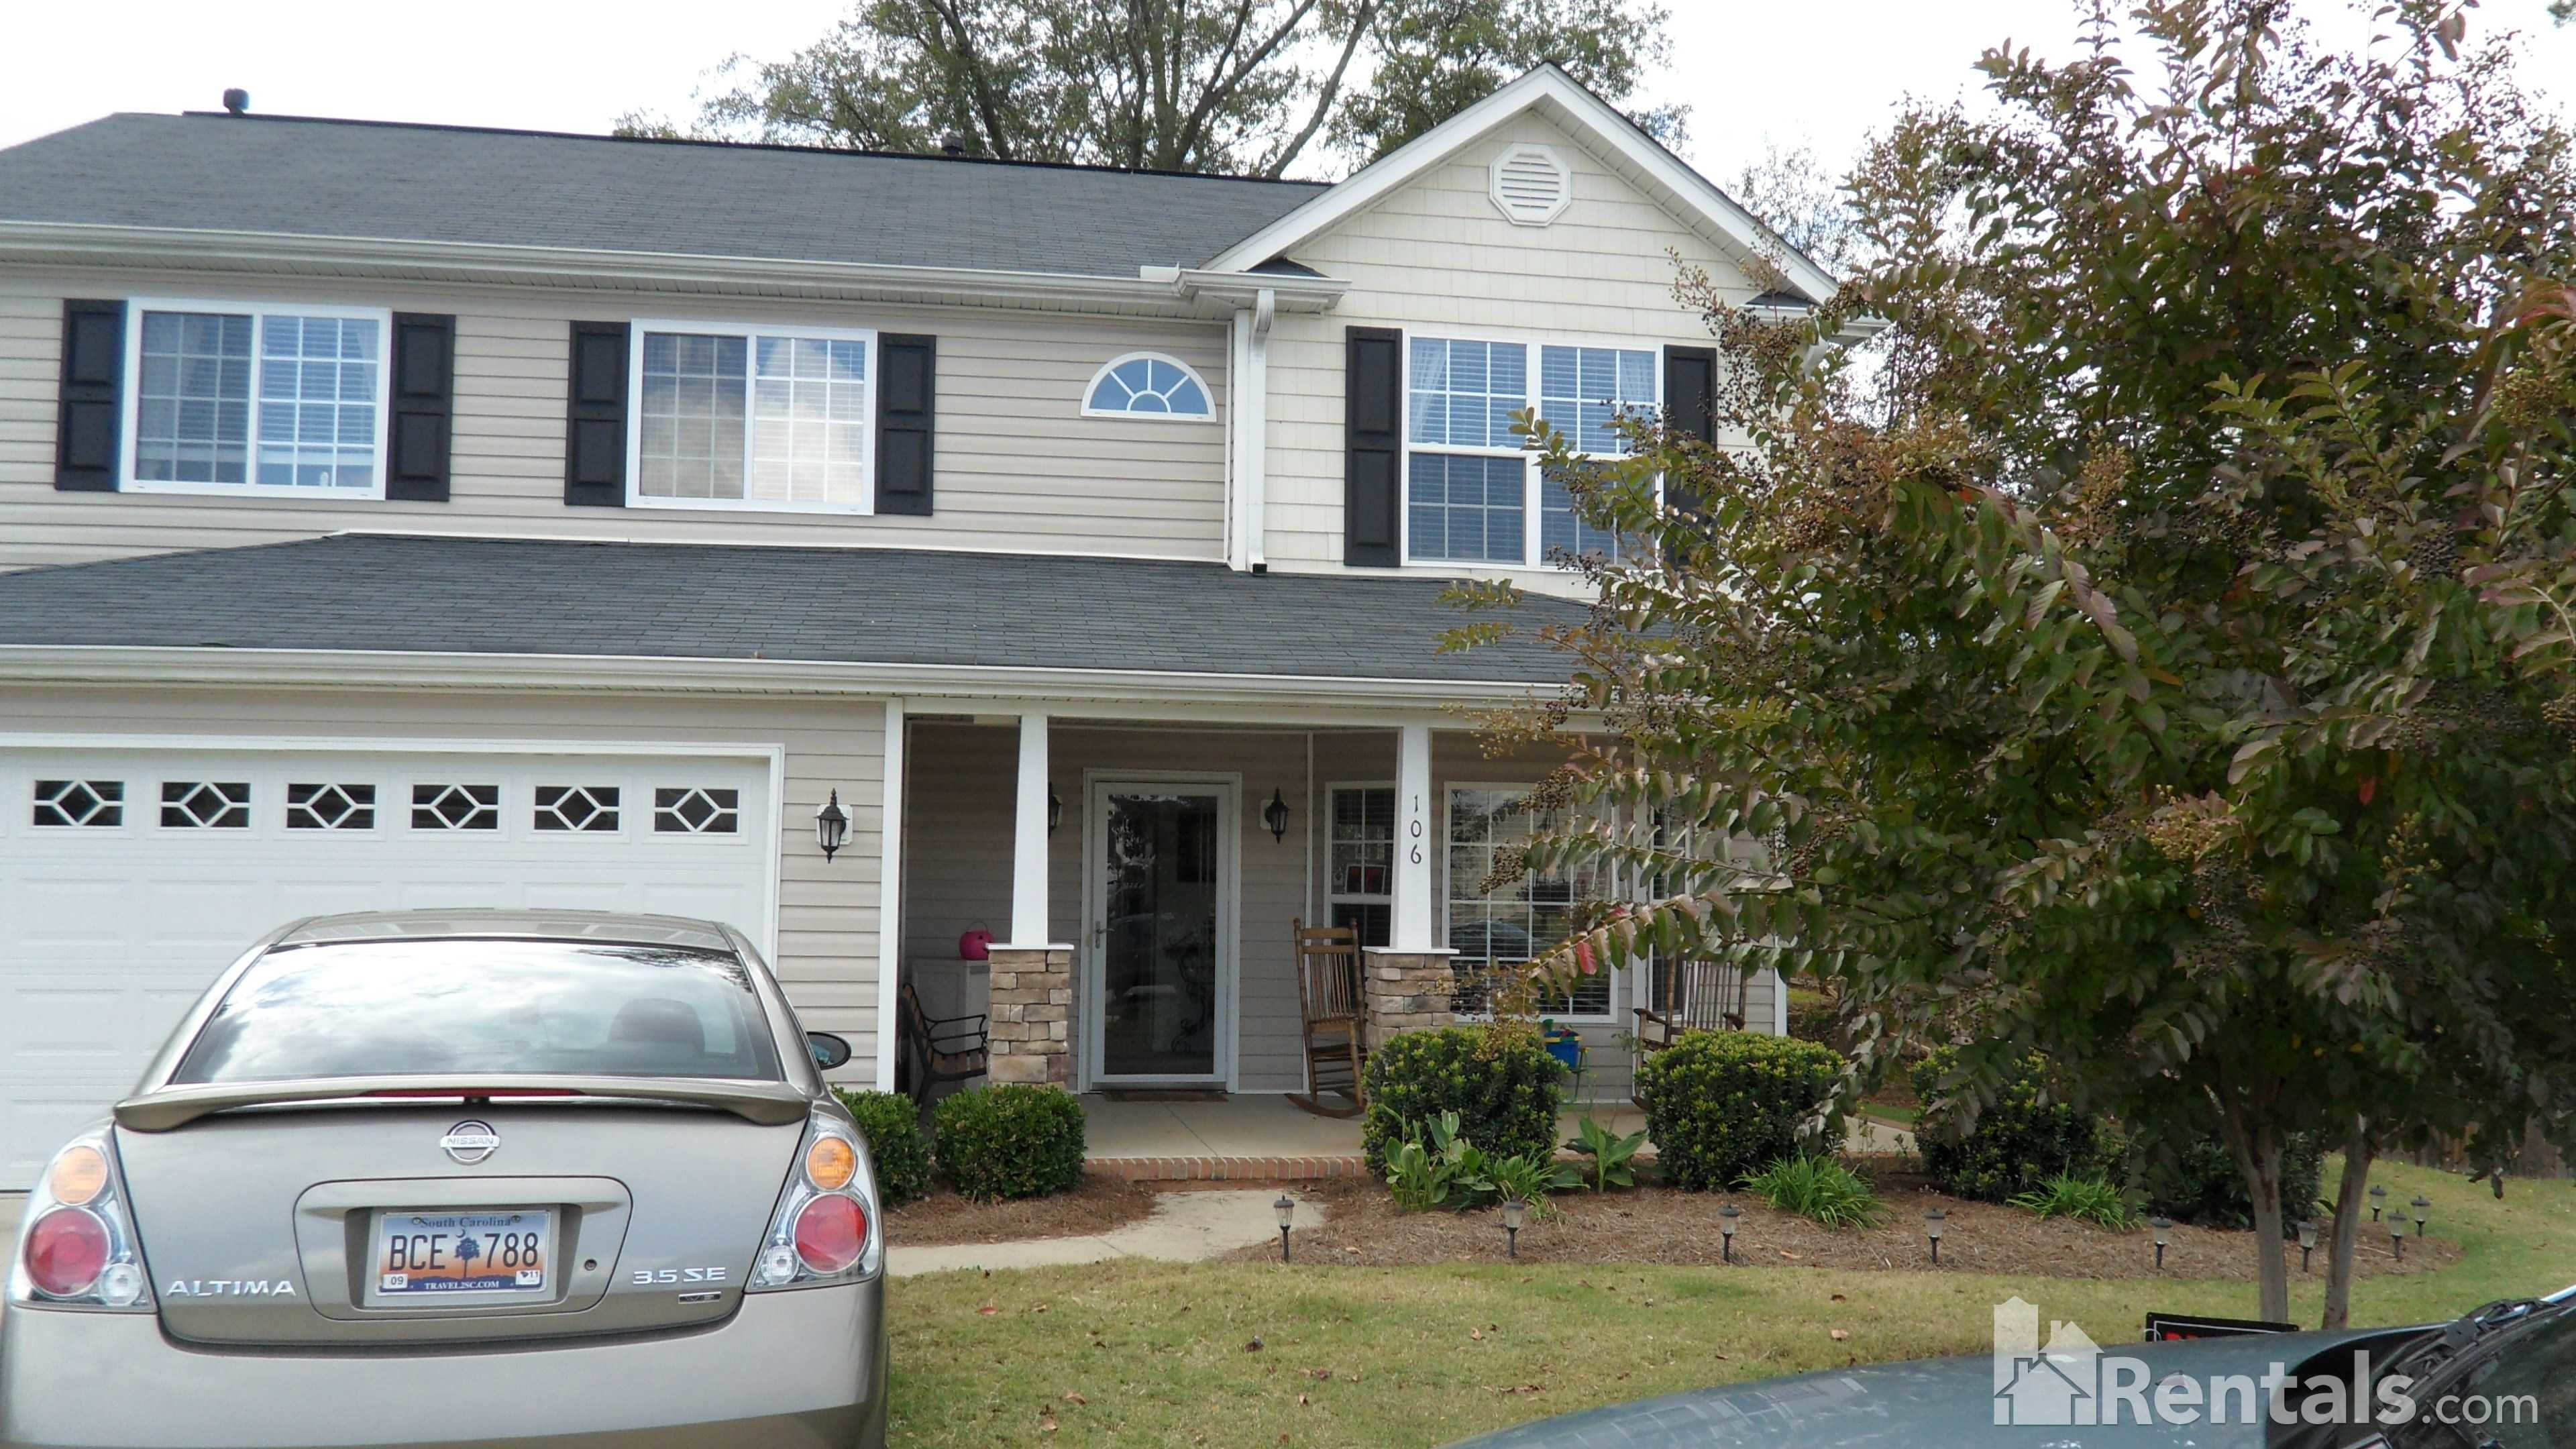 Best Spartanburg Houses For Rent In Spartanburg South Carolina With Pictures